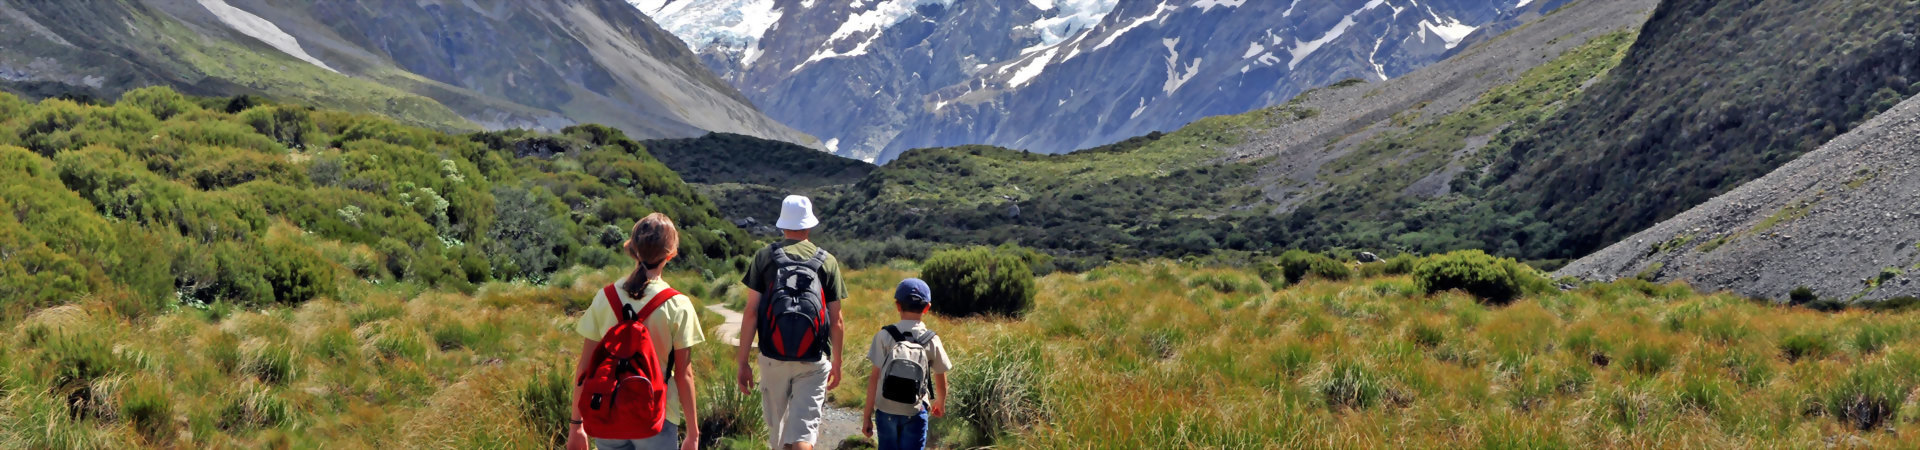 Family enjoying one of the hiking trails in New Zealand mountains